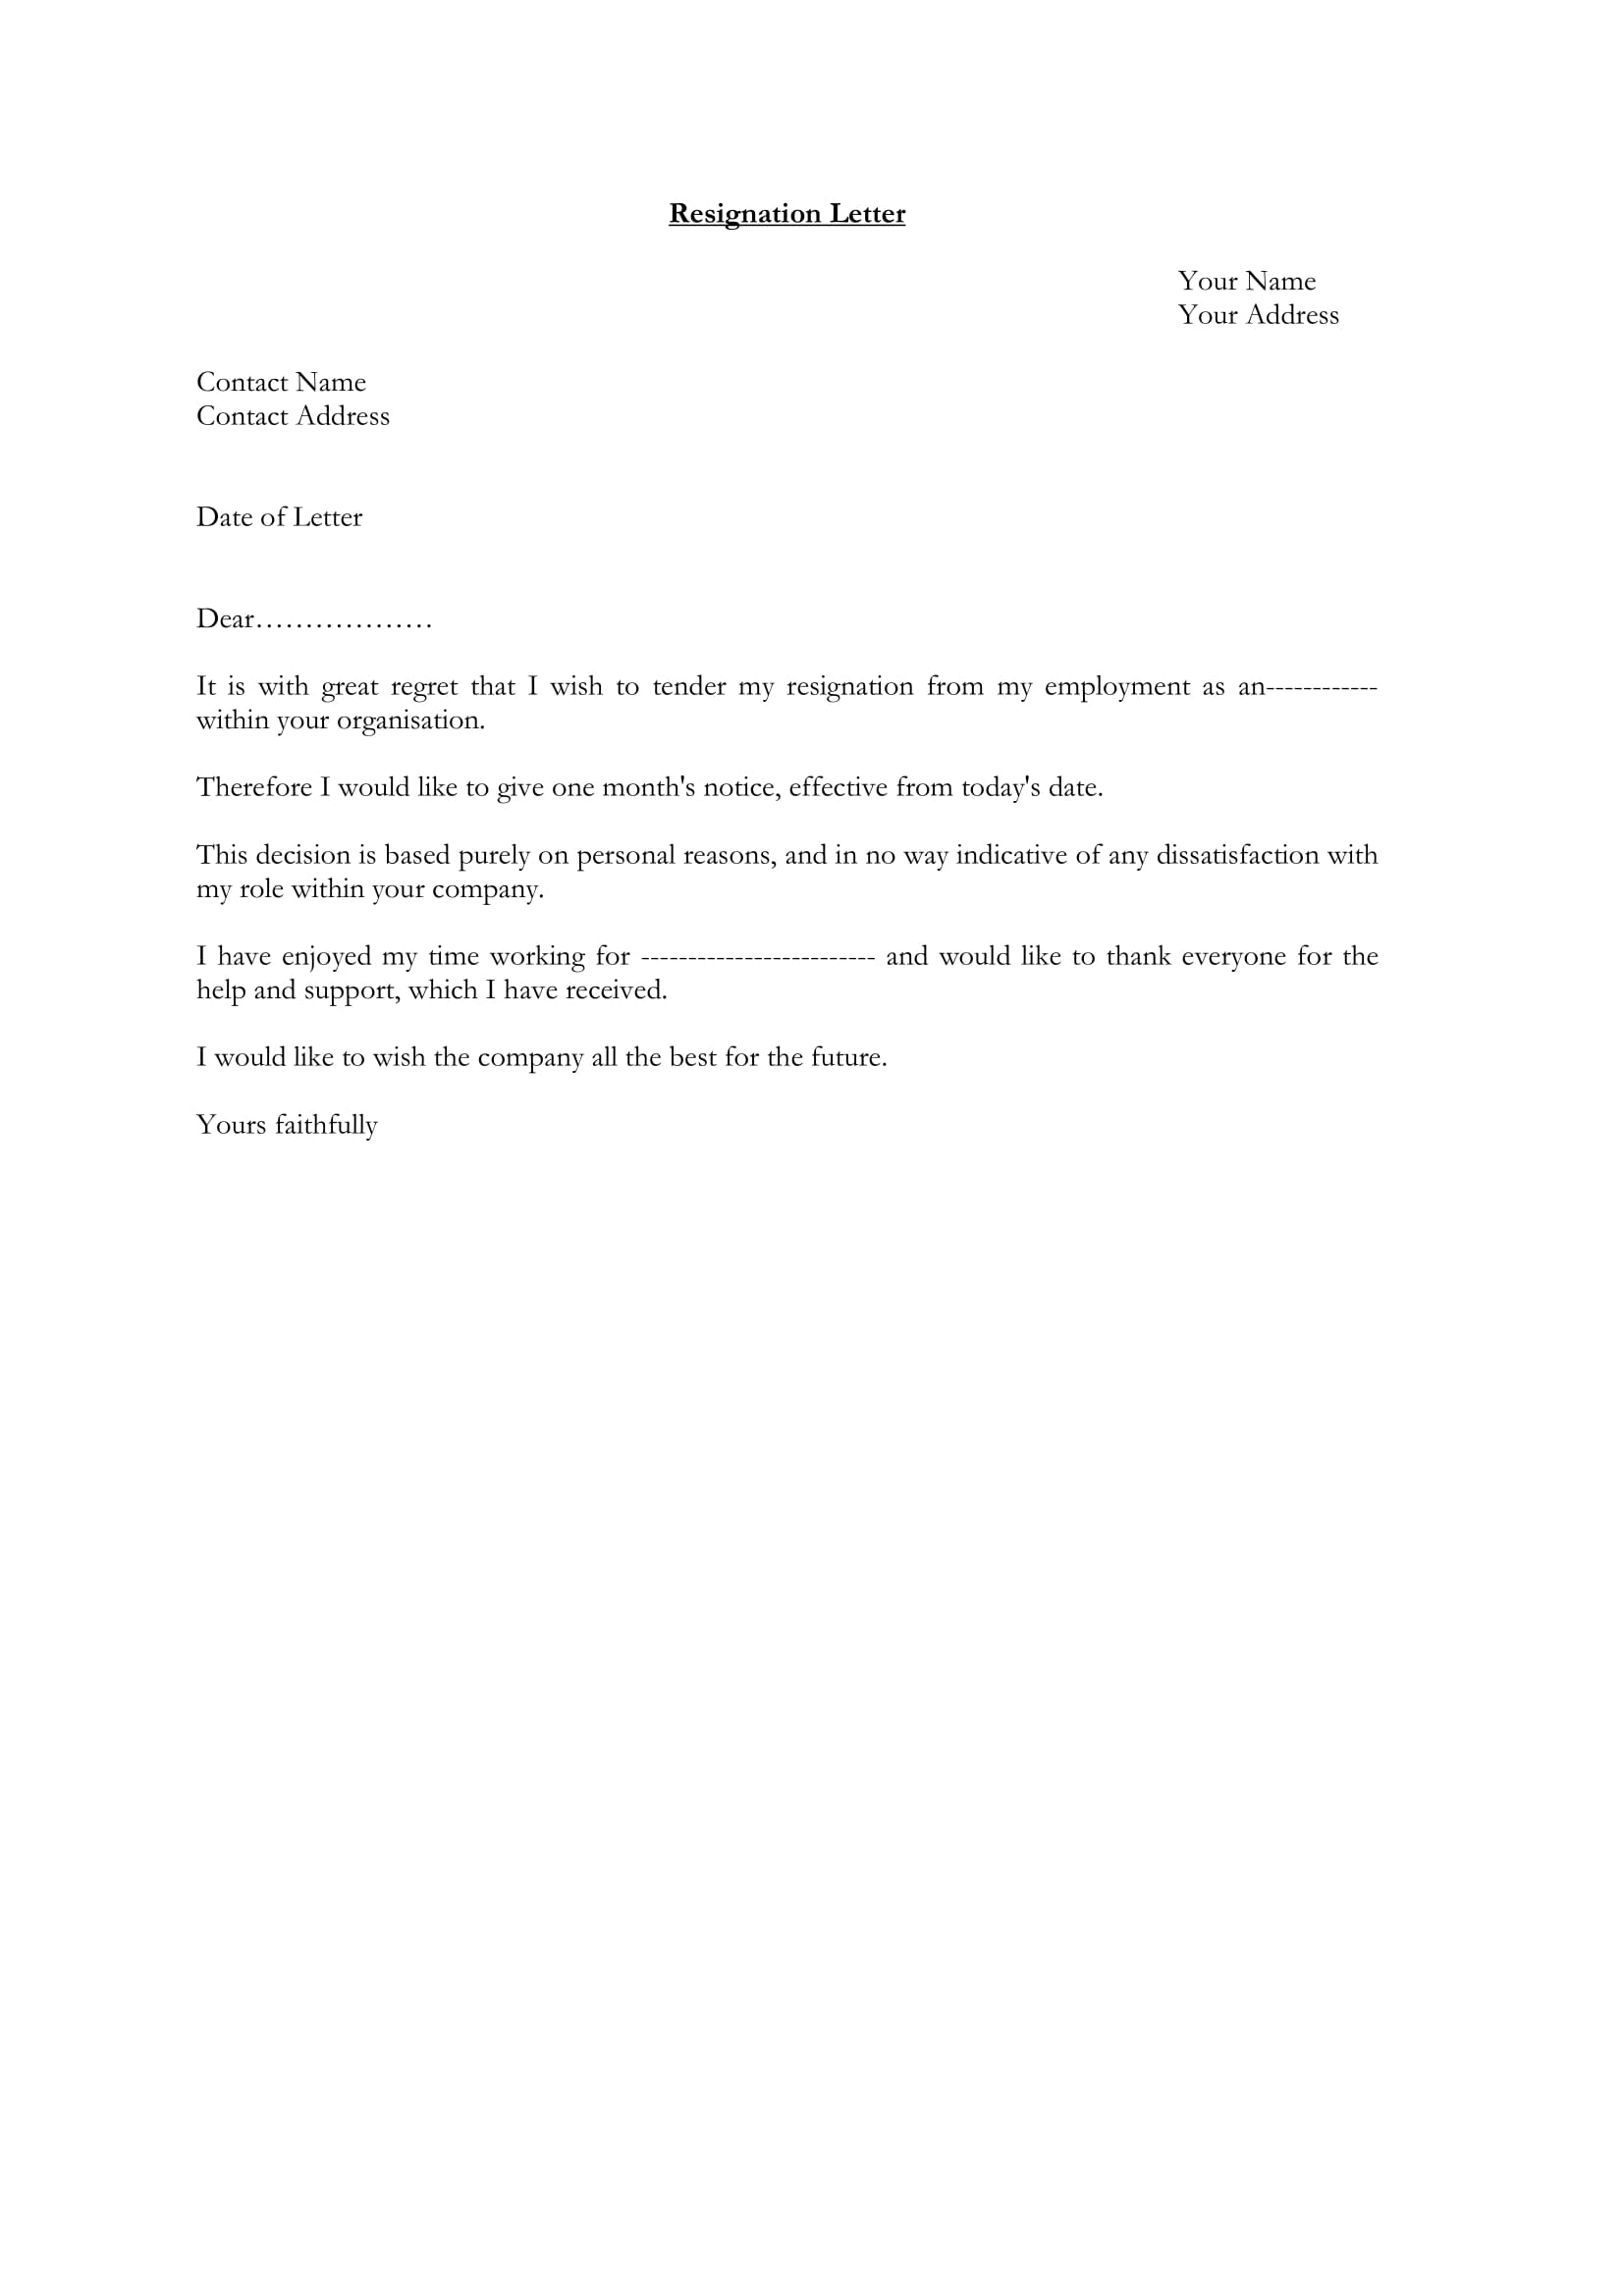 simple resignation letter sample with reason 35 simple resignation letter examples pdf word examples 25394 | resignation letter 1